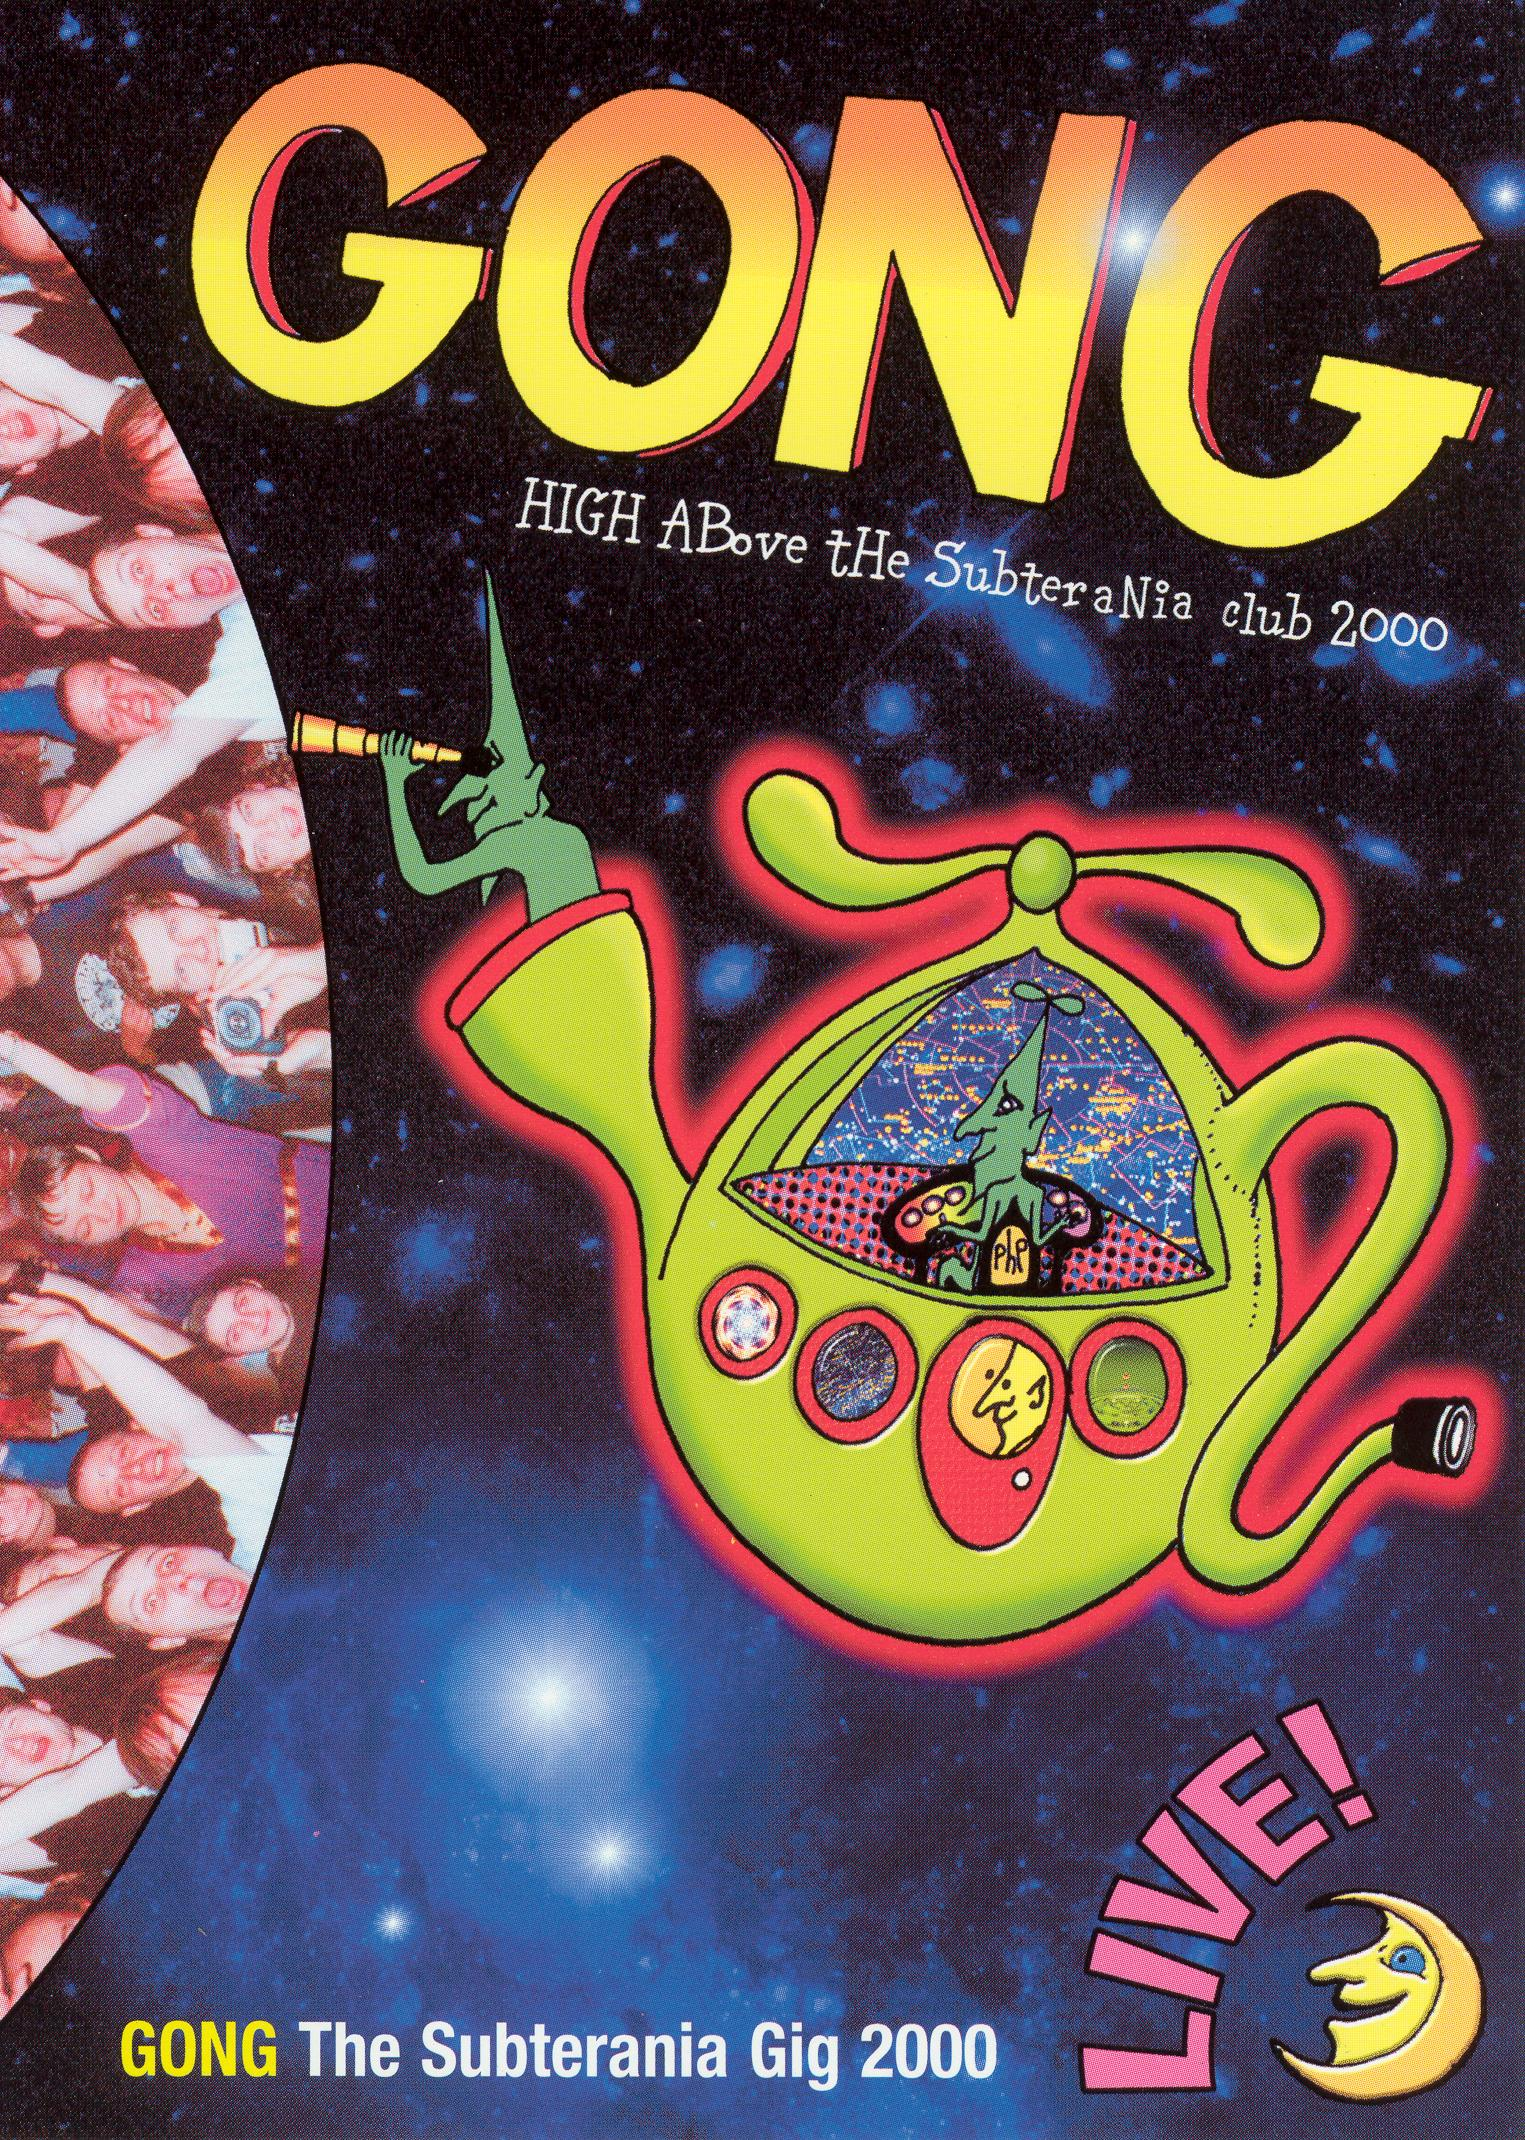 Gong: High Above the Subterranea Club 2000